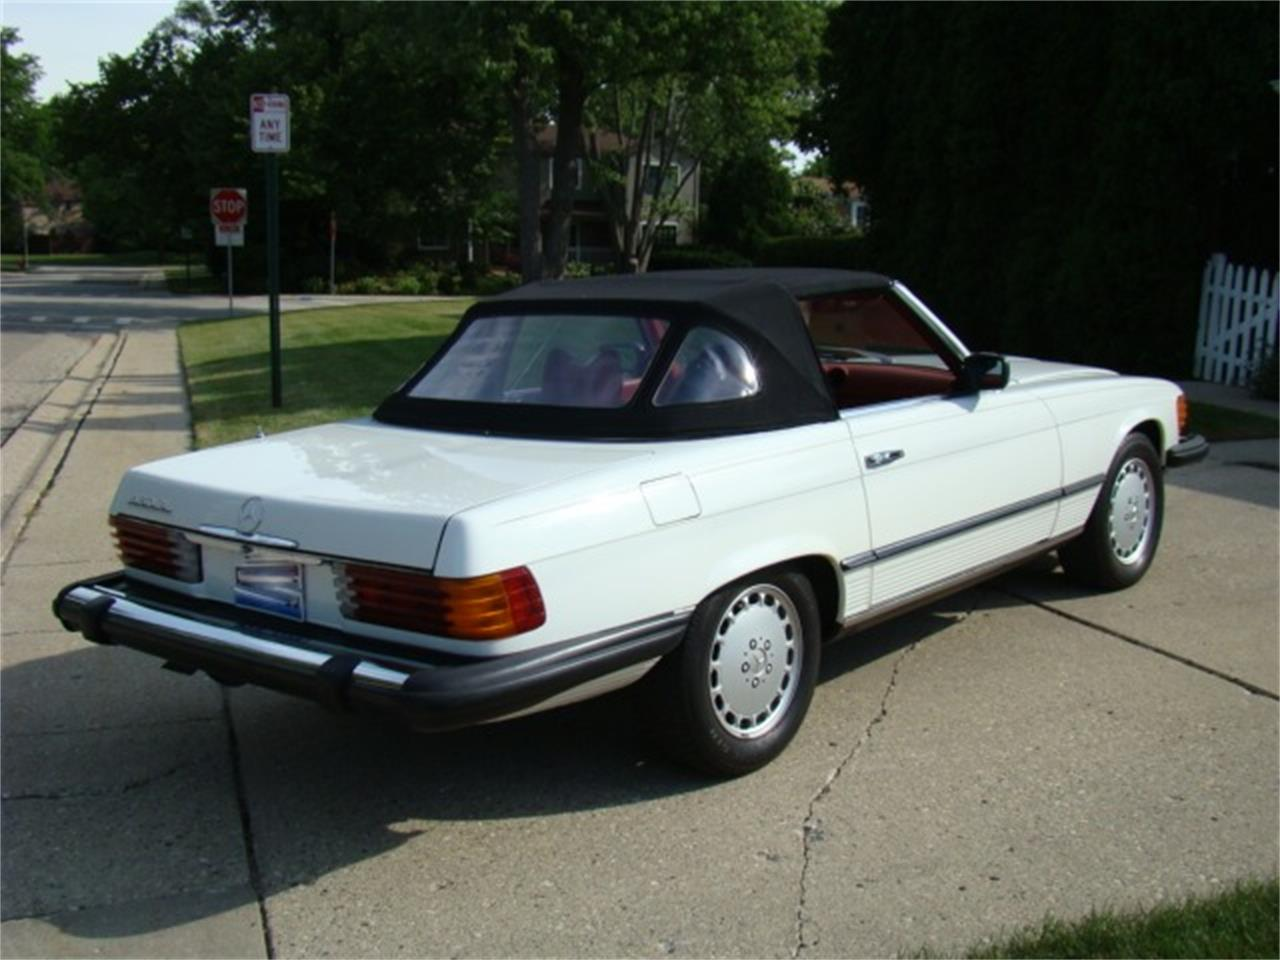 Large Picture of 1978 Mercedes-Benz 450SL - $16,990.00 Offered by a Private Seller - F3LR